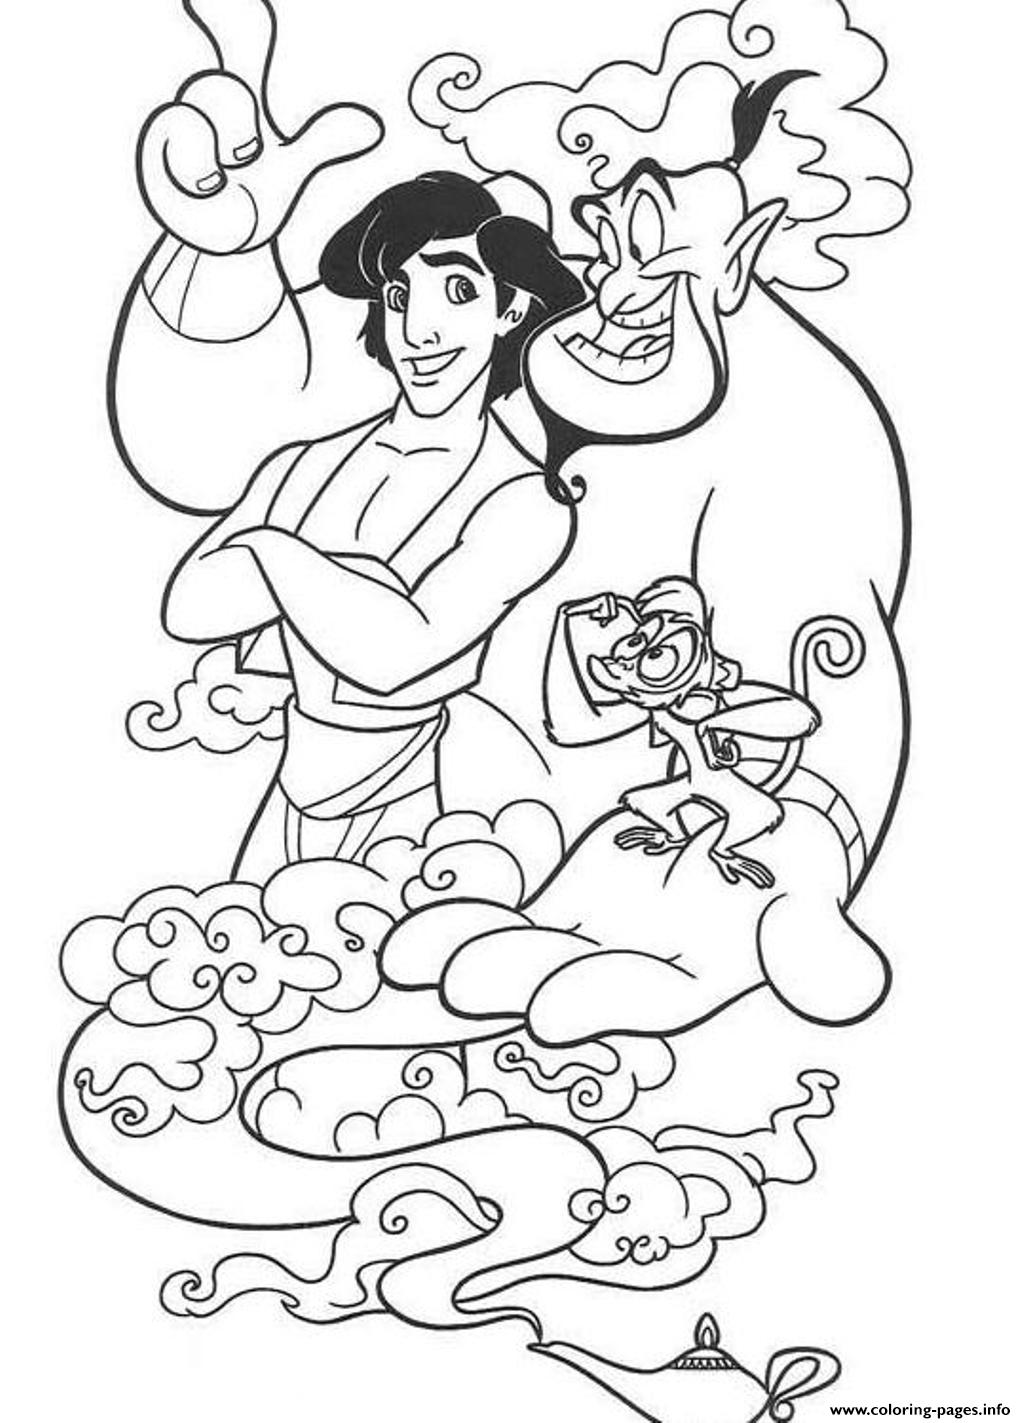 Abu Genie And Aladdin  Disney7665 coloring pages